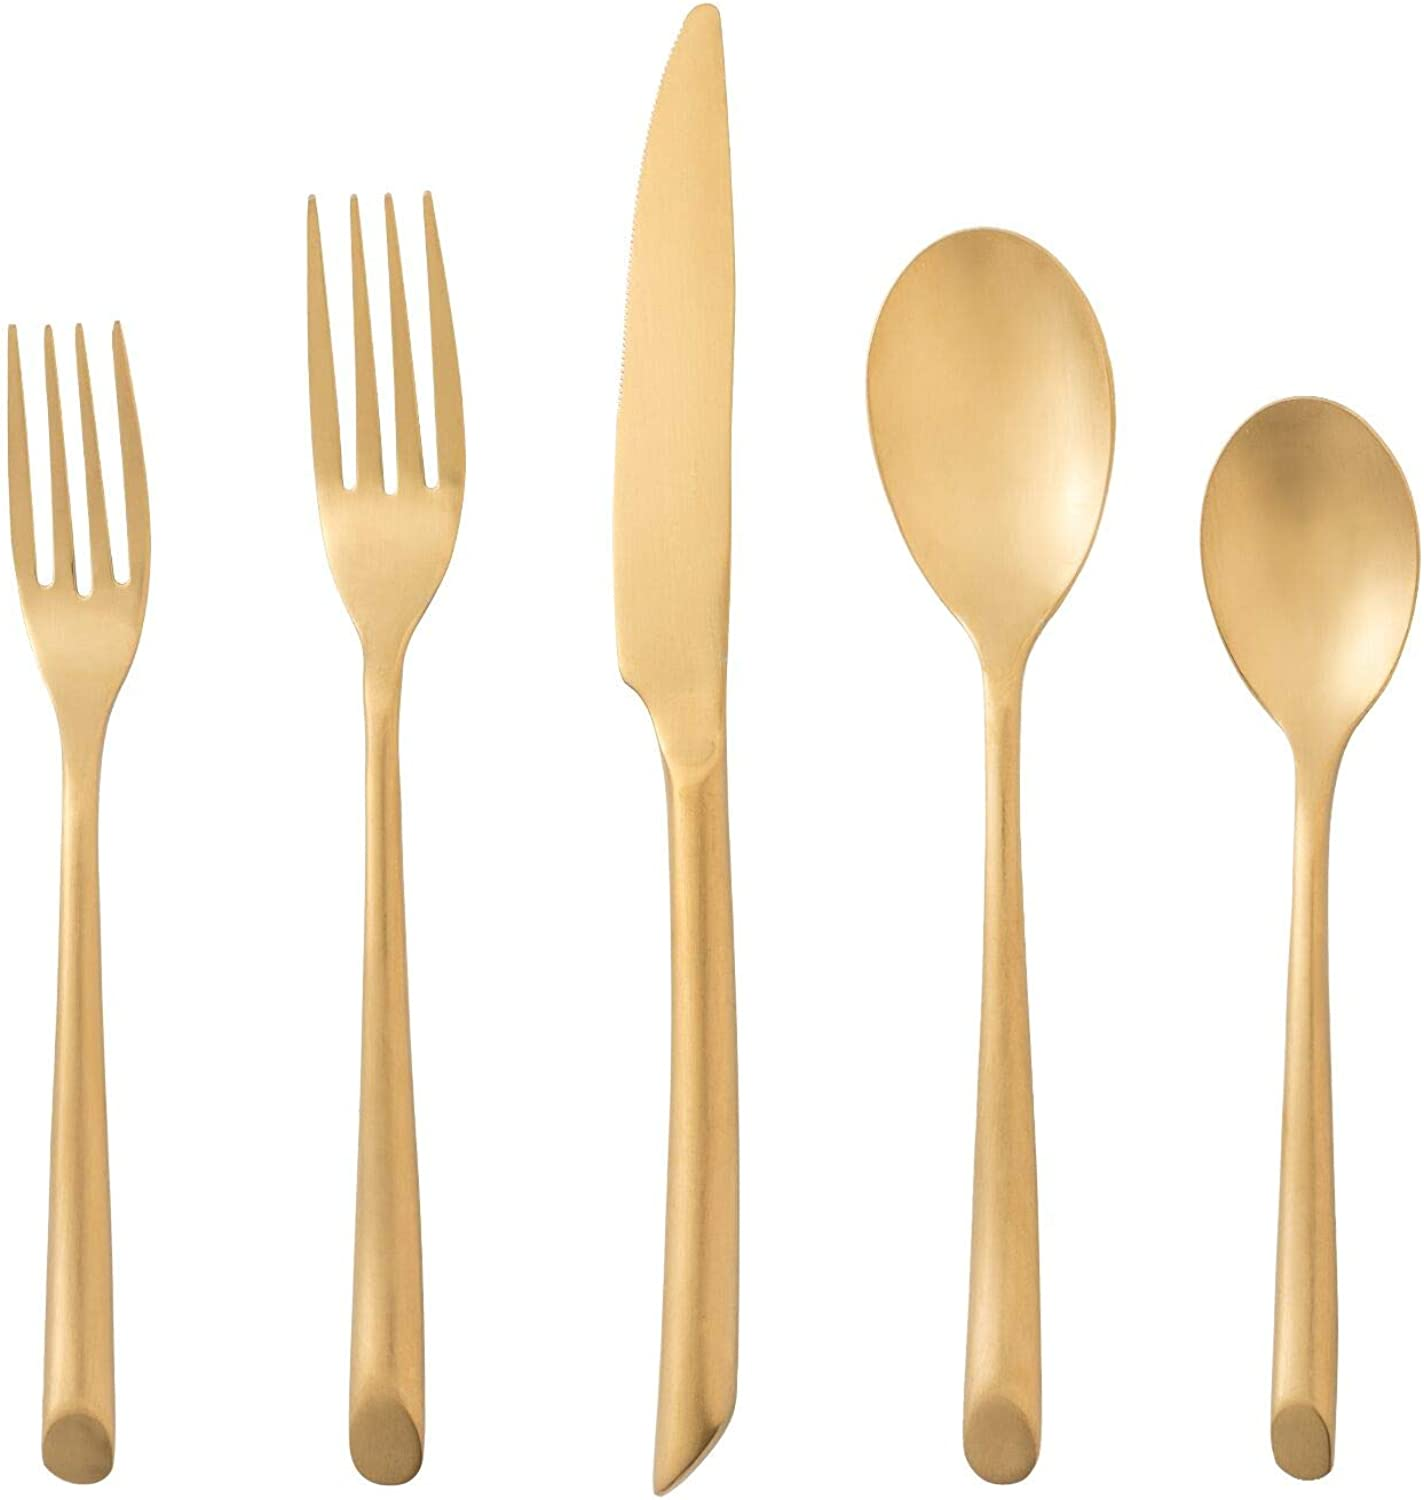 DEACORY Flatware Set 20 Piece Matte gold color Wave with Gift Box Packing Service for 4 Kitchen Restaurant Wedding Use